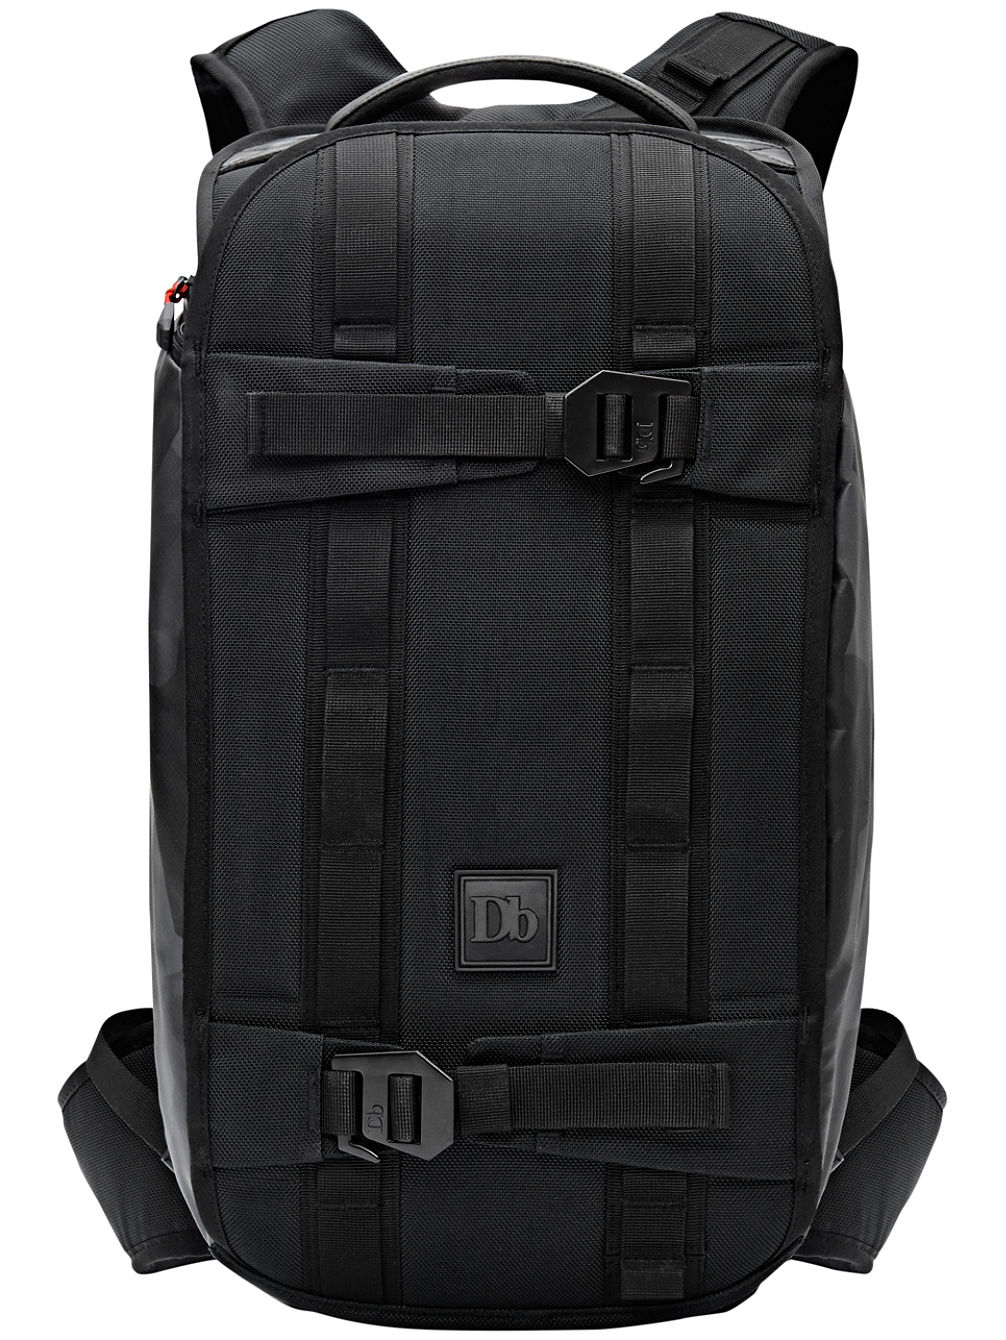 The Explorer Black Camo Backpack